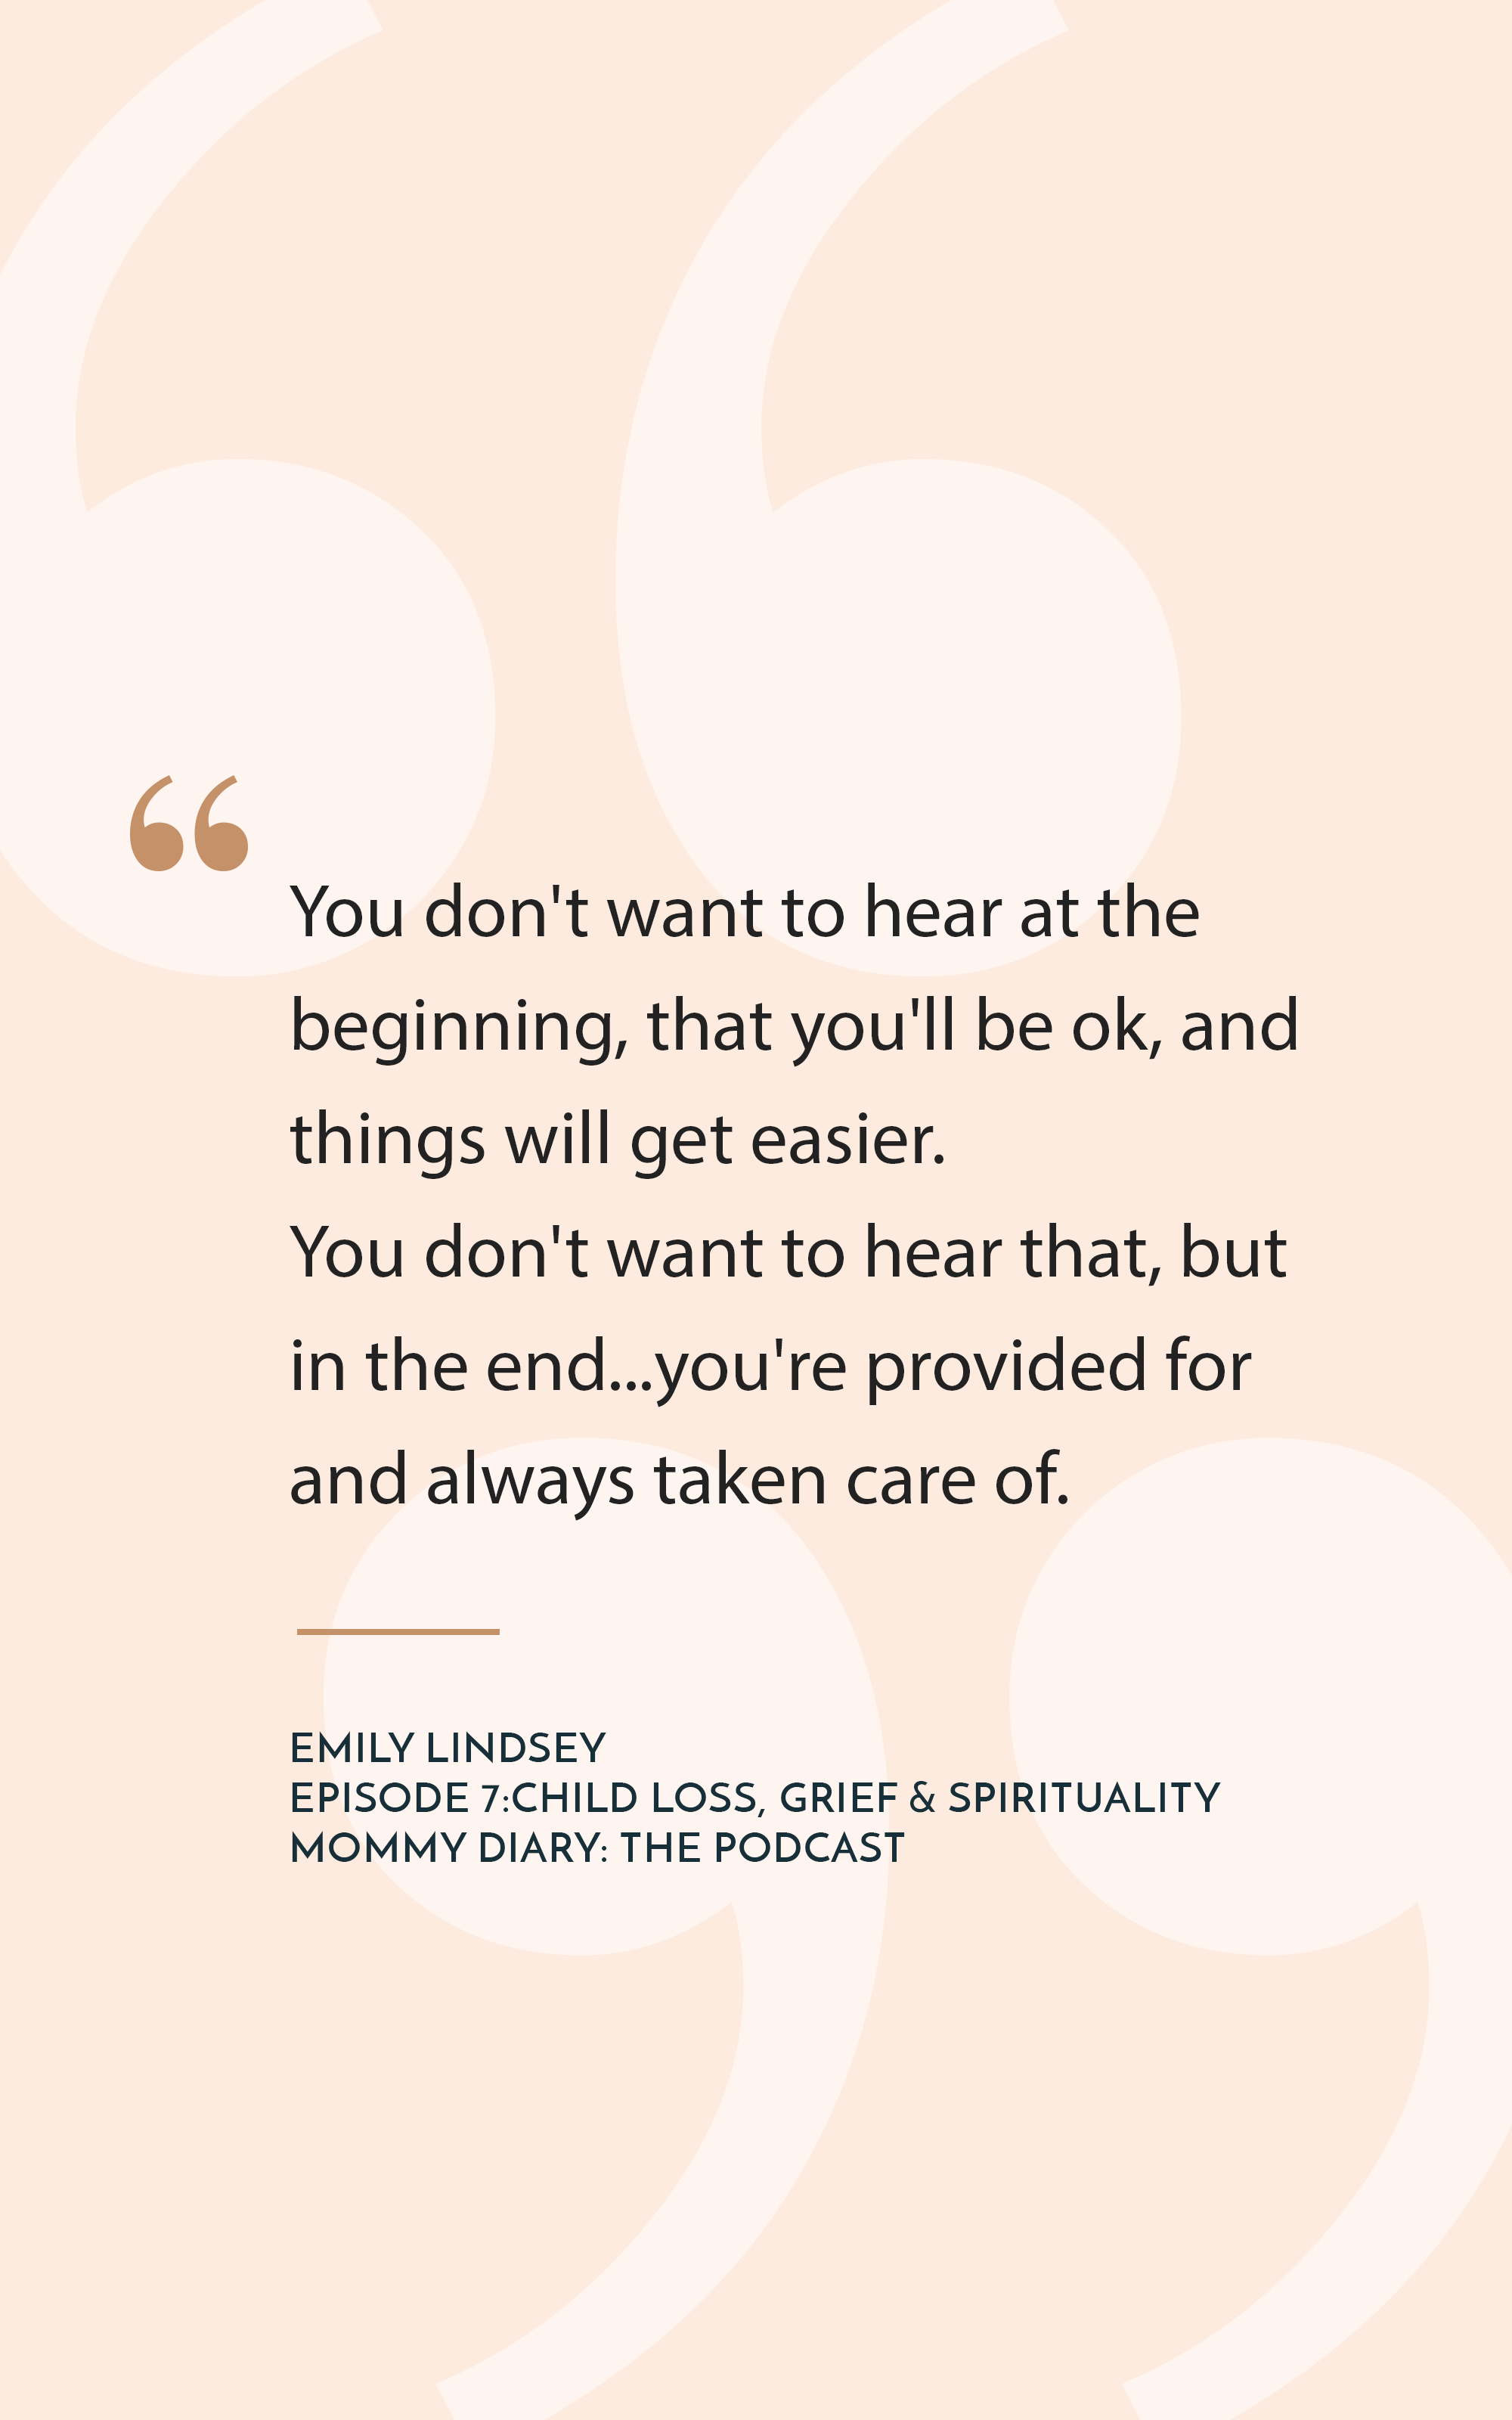 Ep 7: Child Loss, Grief, and Spirituality with Emily Lindsey